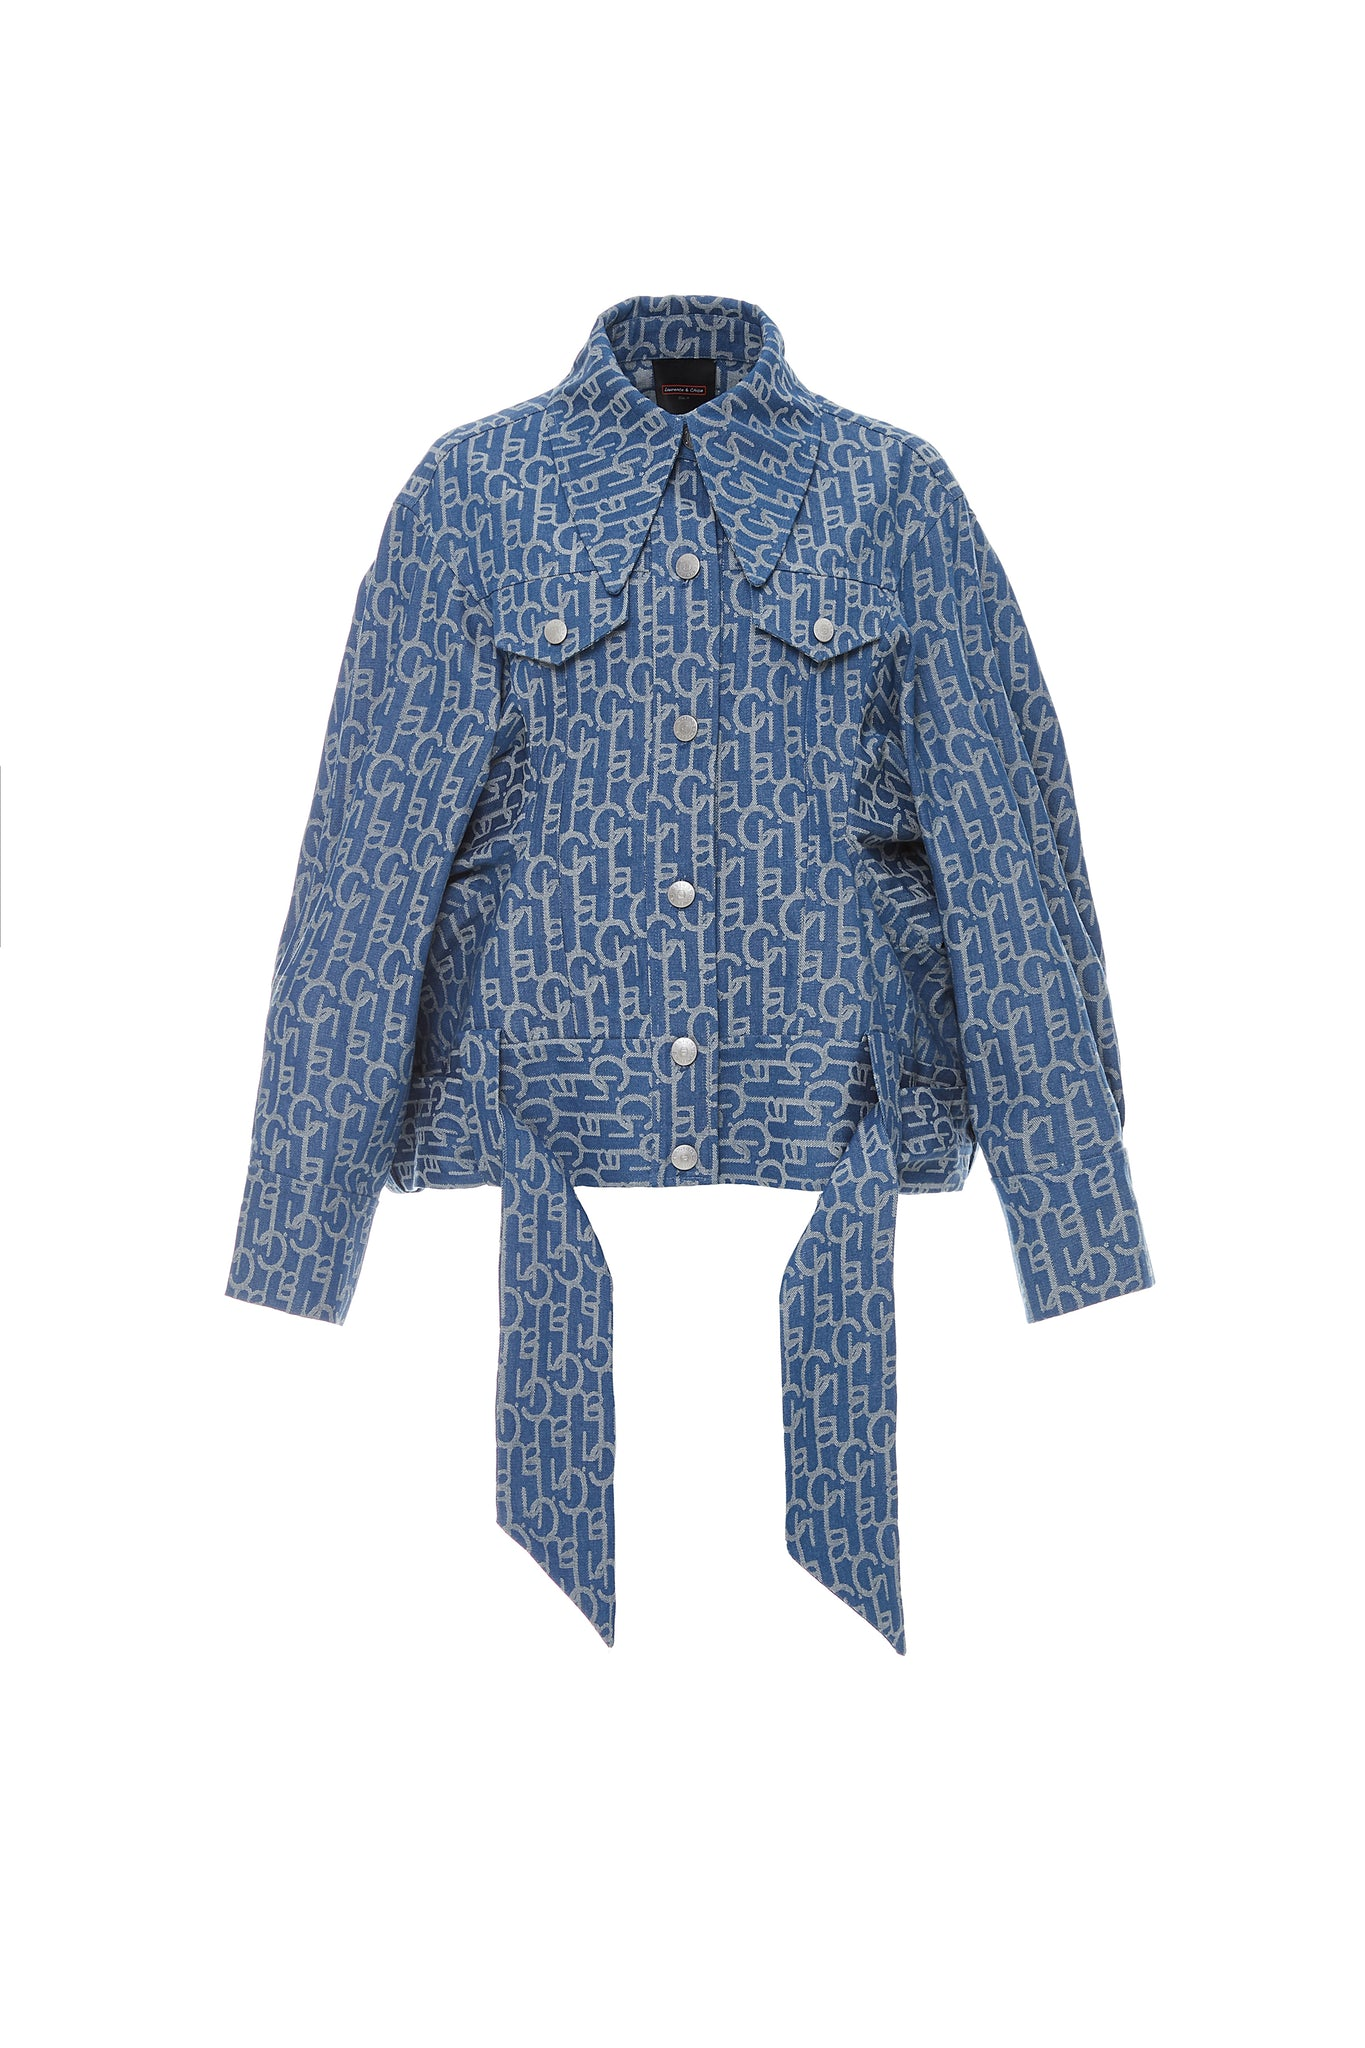 Laulau Chichi Denim Jacquard Oversized Jacket with Beading in Back, Light Blue